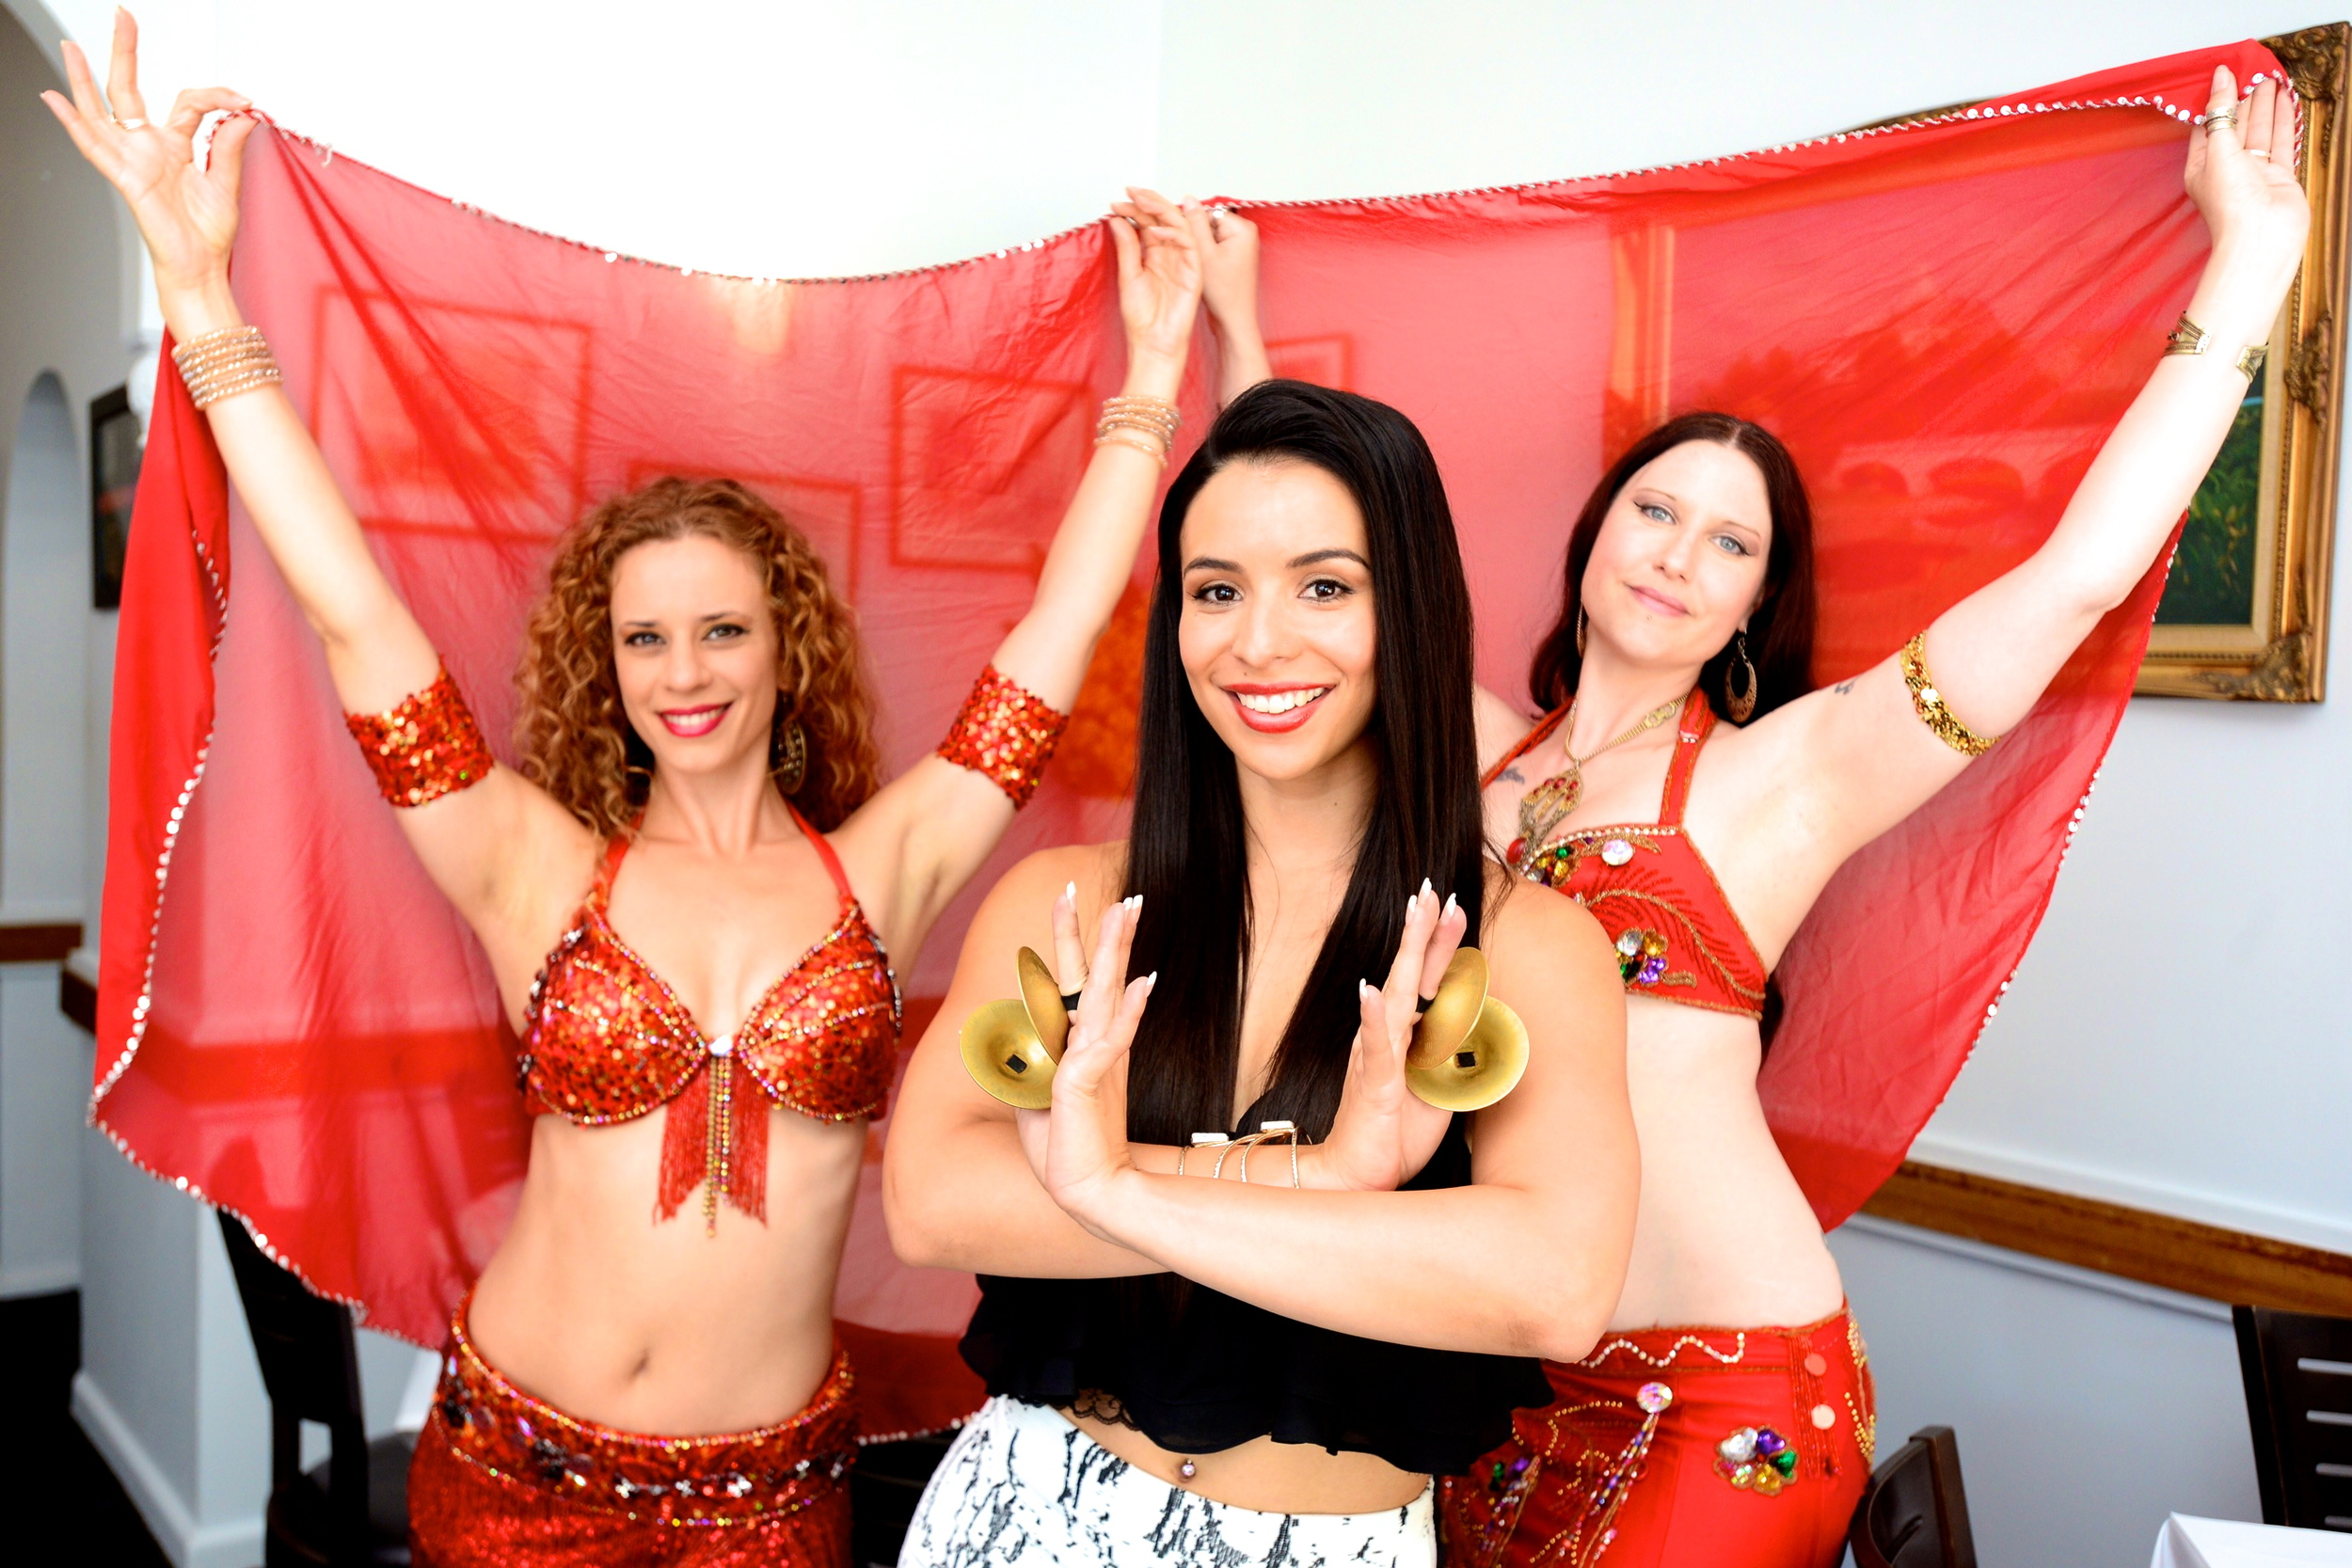 belly dancer Melbourne, belly dance Melbourne, Here Come The Habibs, belly dancing Melbourne